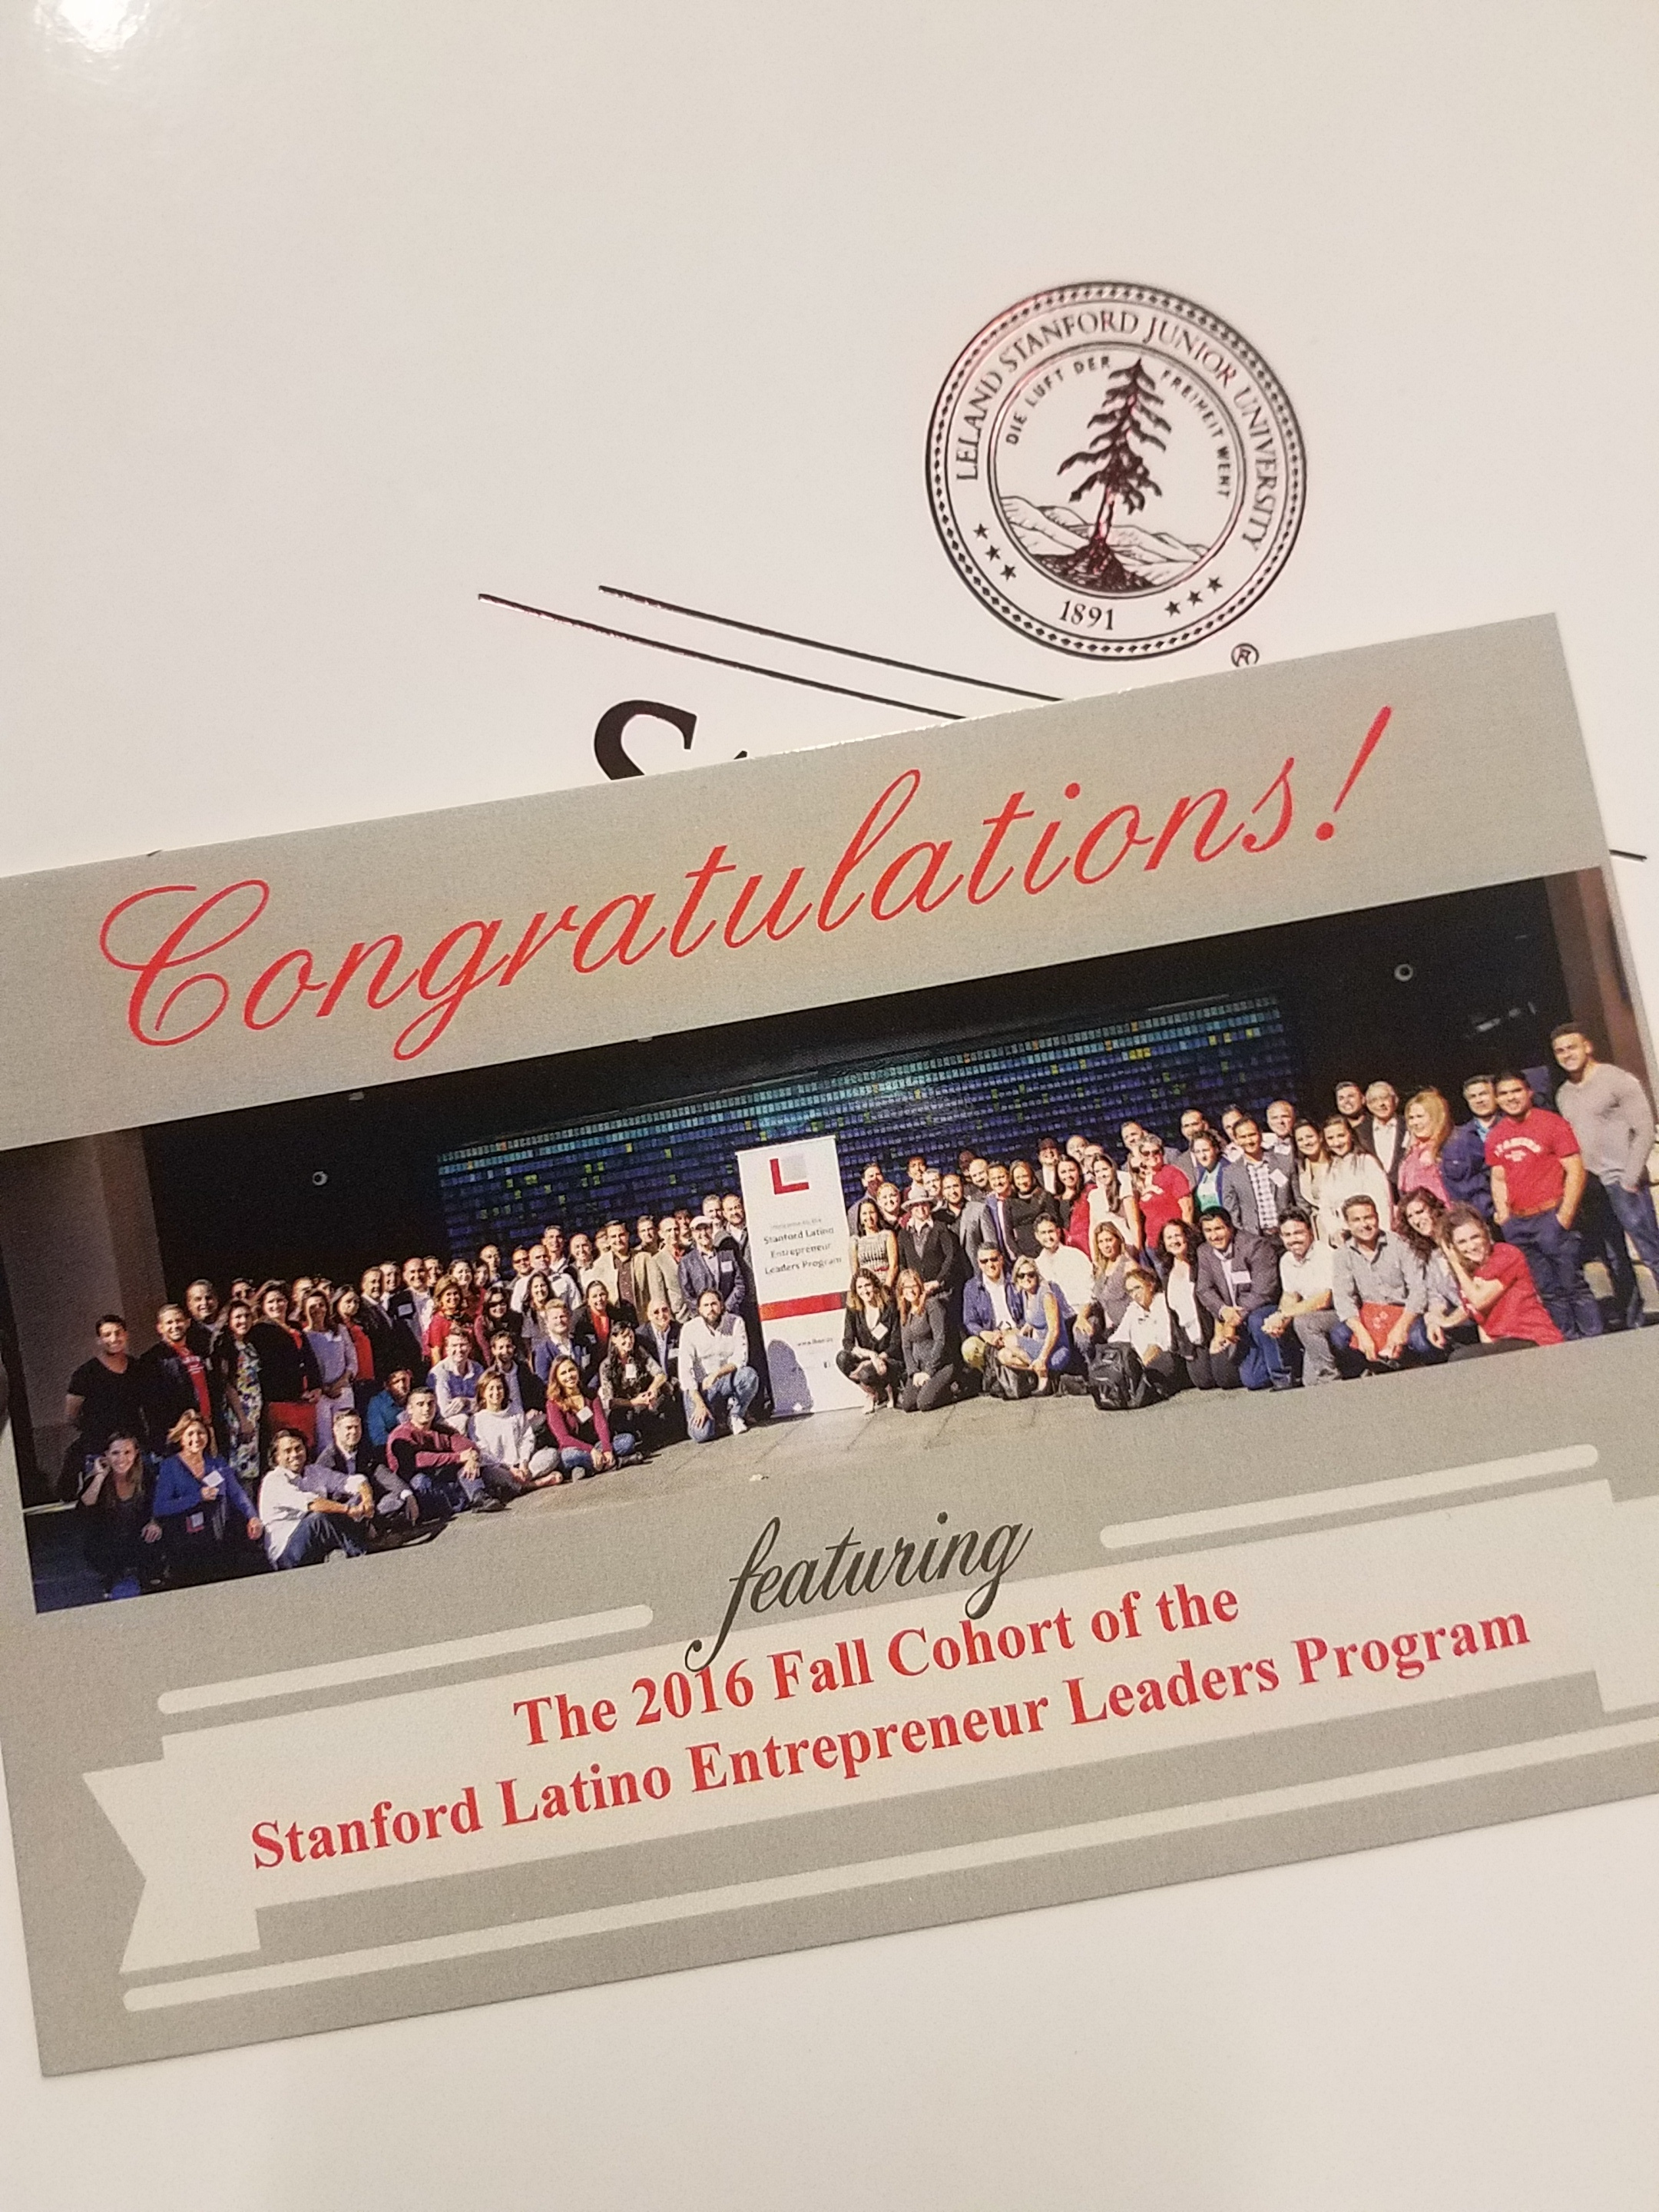 The certification of completion from the Stanford Latino Entrepreneur Leaders Program